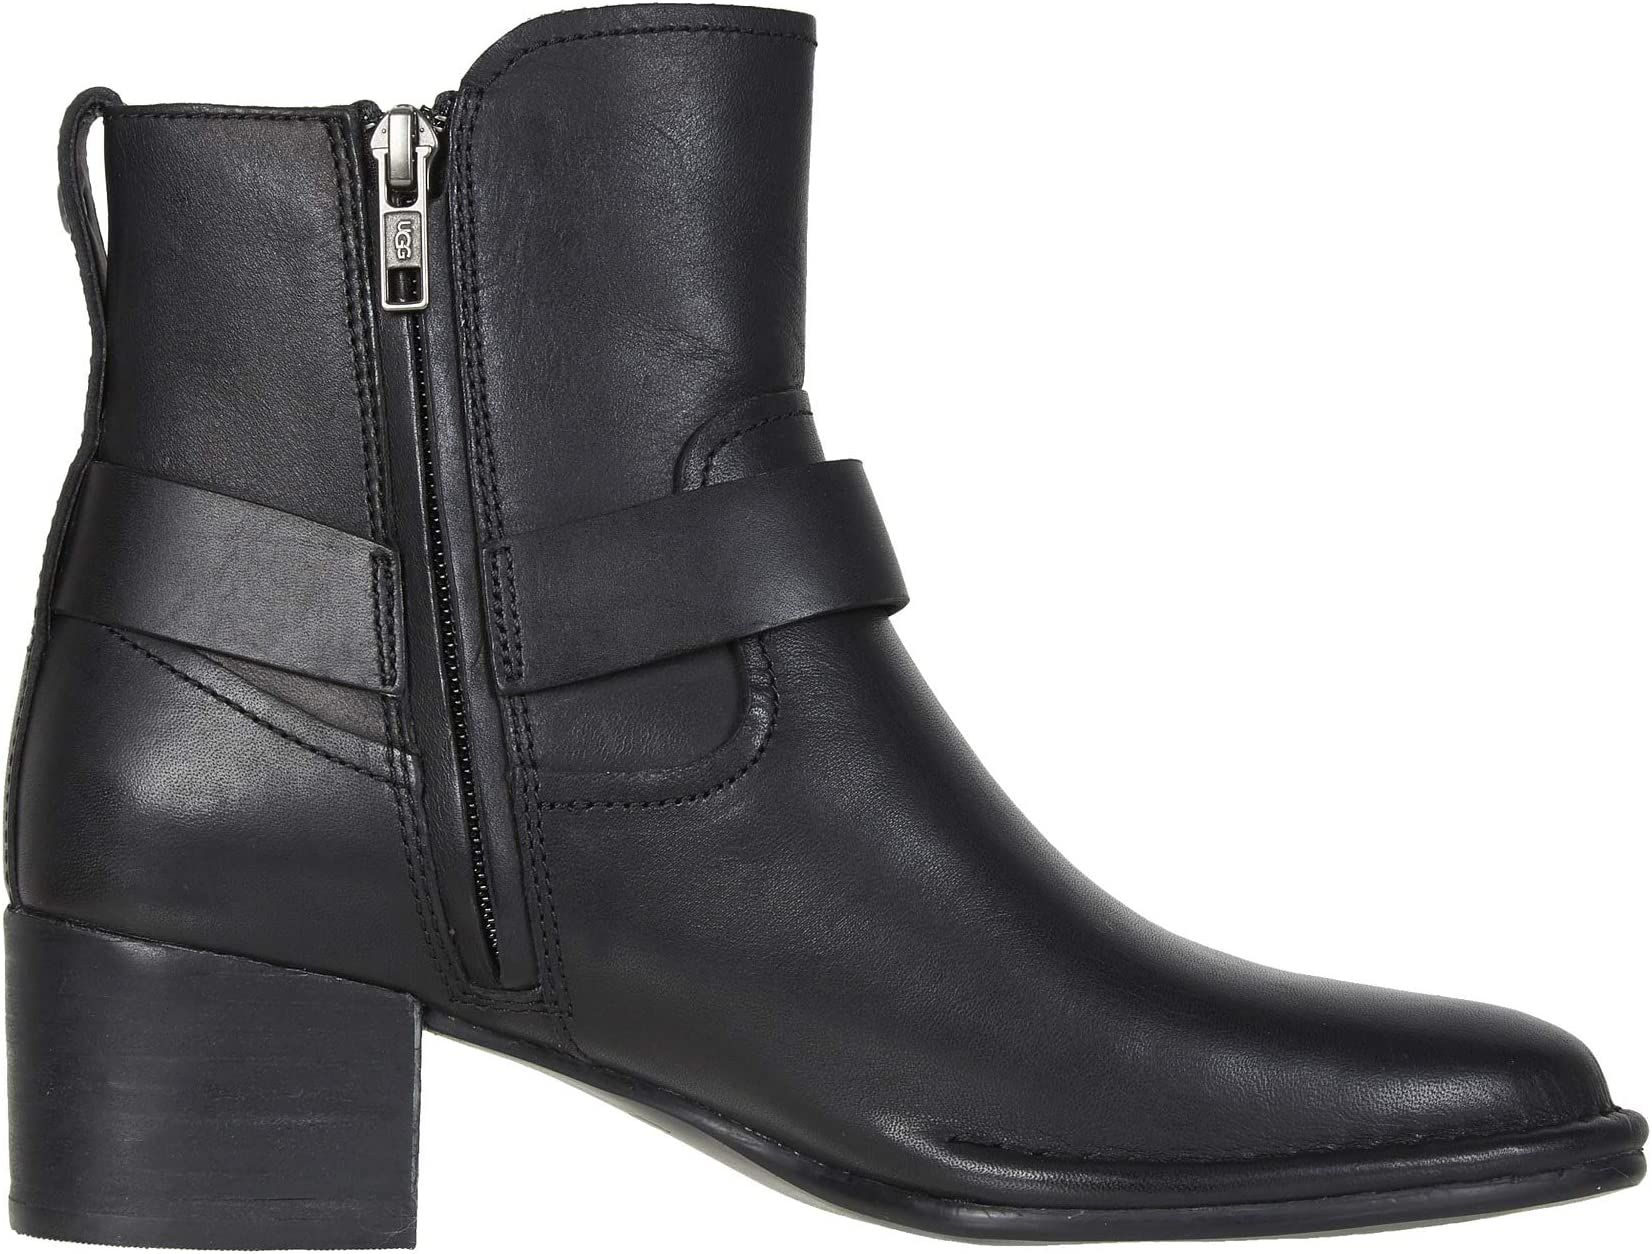 UGG Atwood | Women's shoes | 2020 Newest